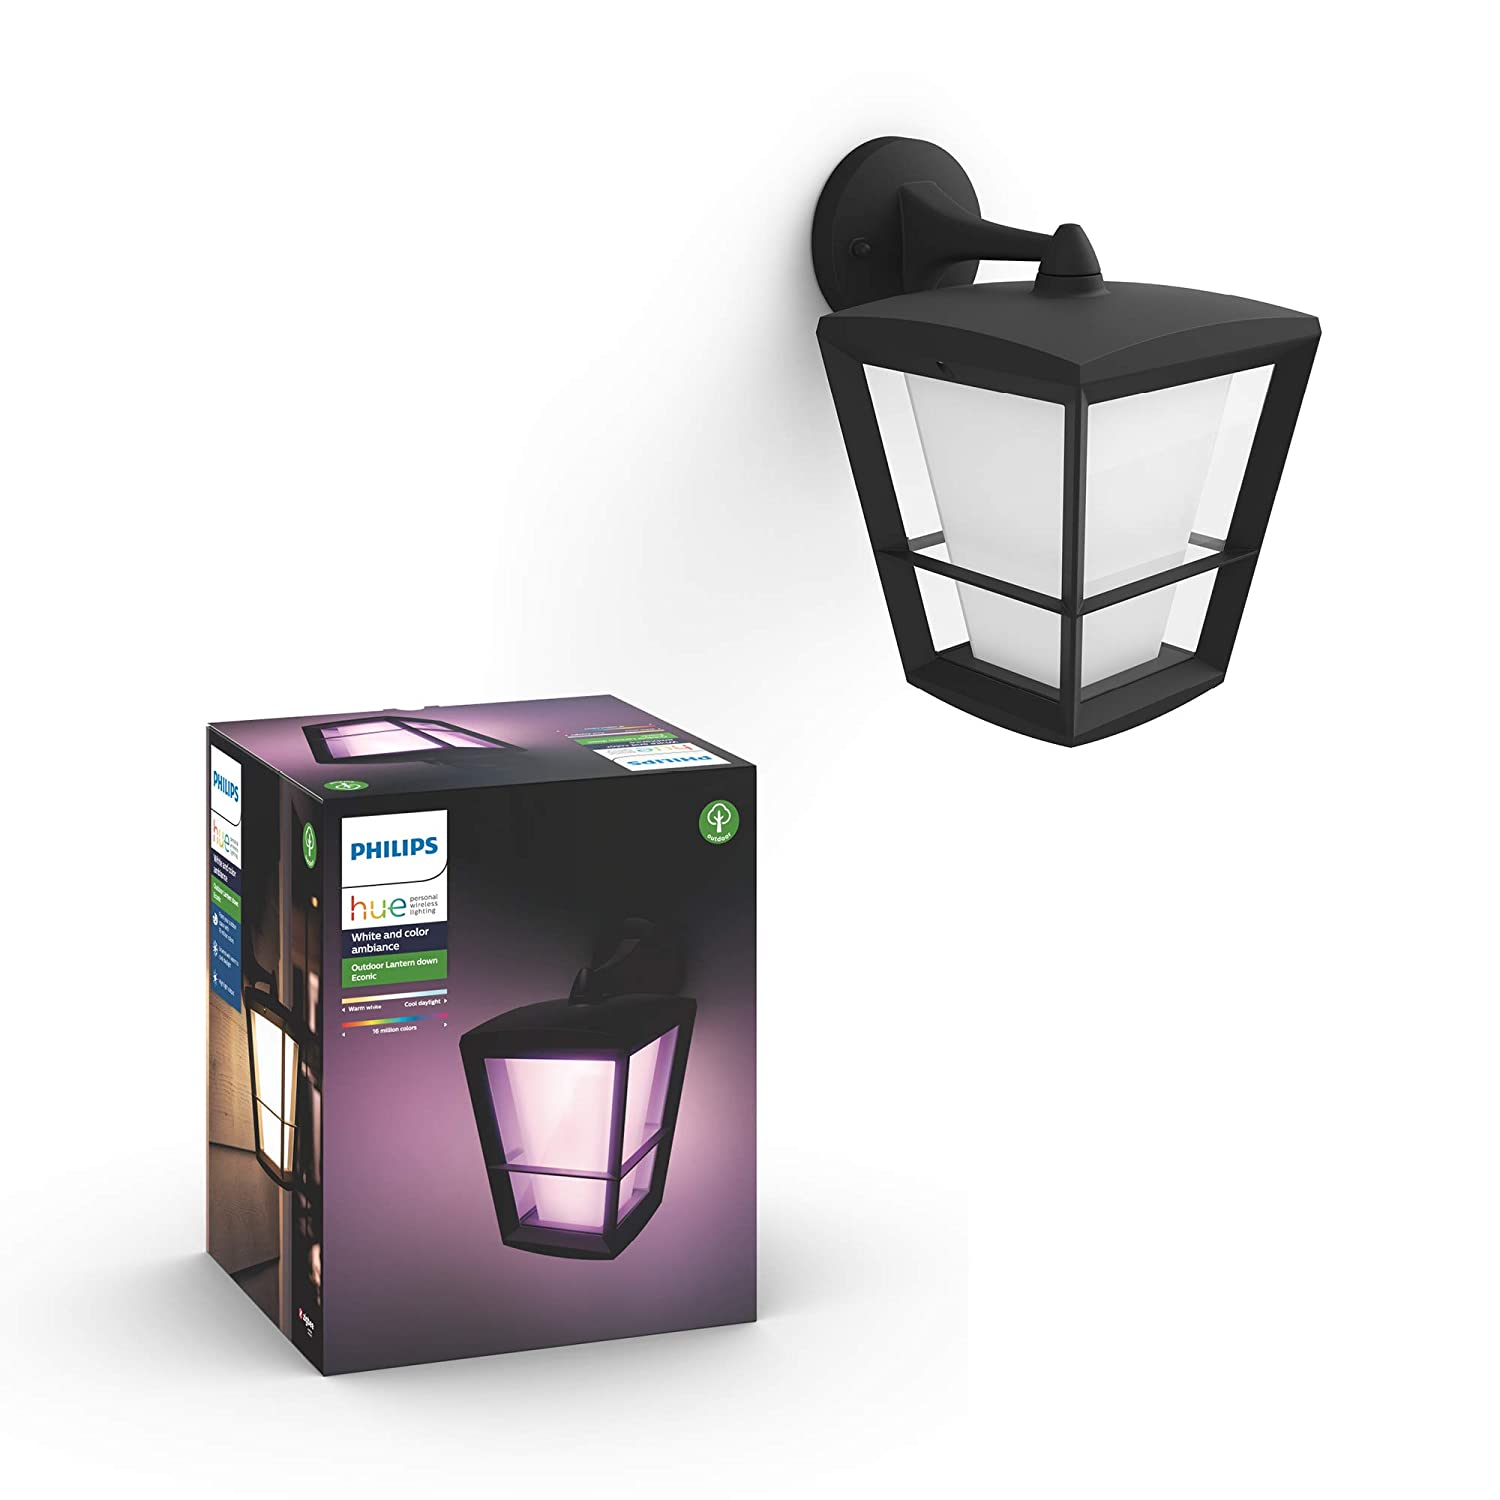 358e07403ac Philips Hue Econic Smart Outdoor White   Color Wall Lantern